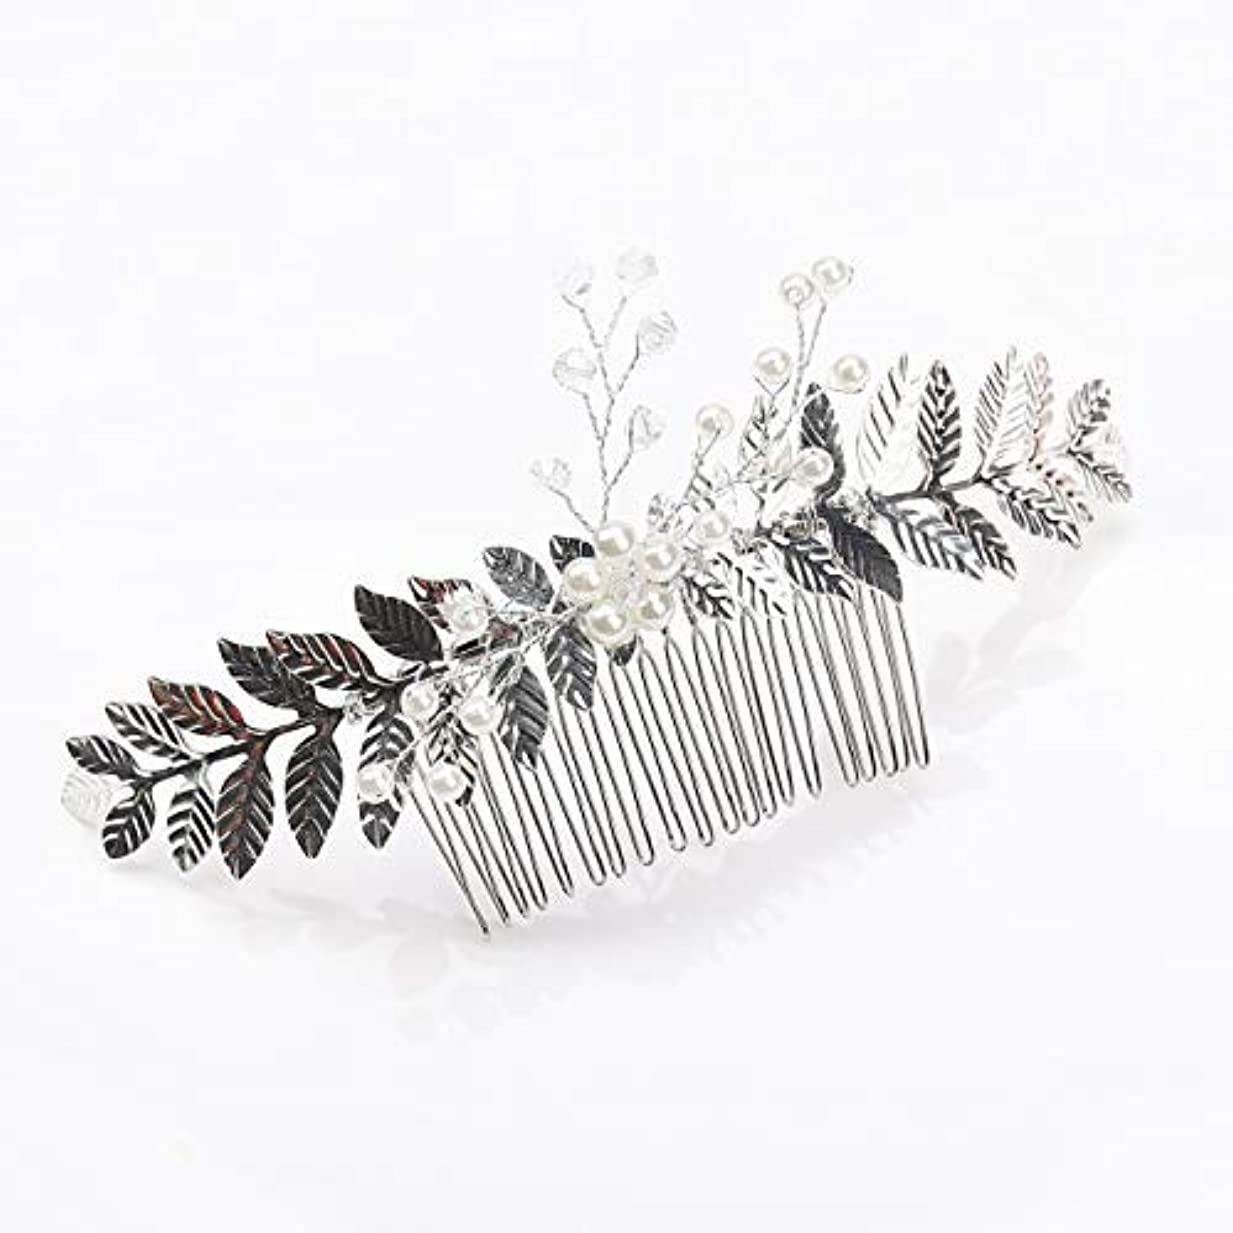 何十人も詐欺師ボーナスKercisbeauty Rustic Wedding Oliver Branch Pearl Flower and Crystal Hair Comb for Bride Bridesmaid Prom Headpiece...